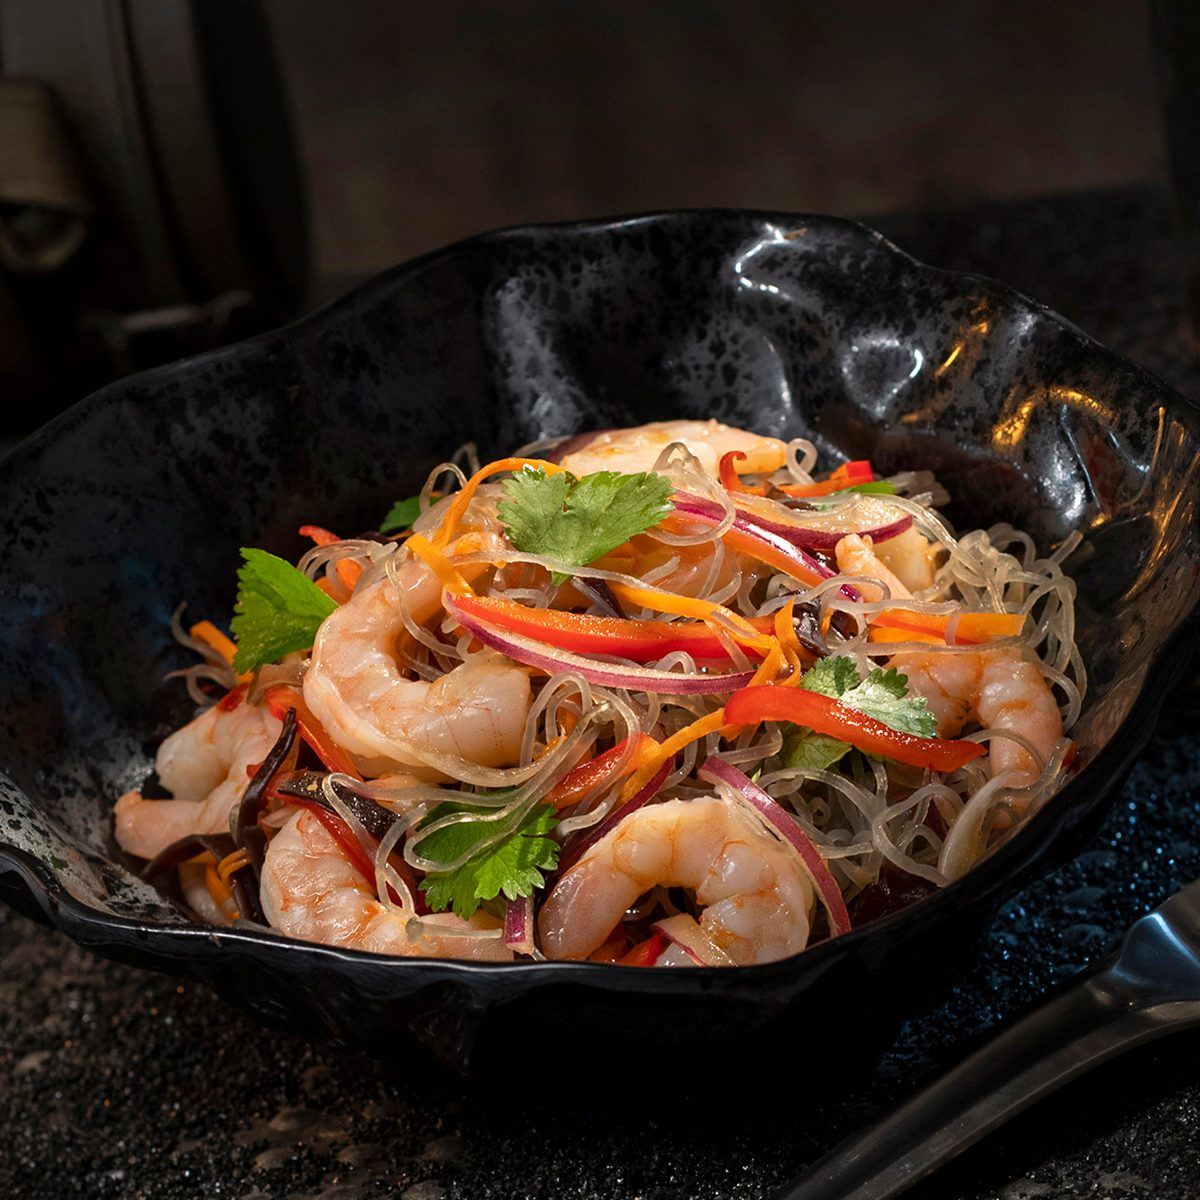 Surabat Shrimp & Noodle Salad from Docking Bay 7 Food and Cargo inside Star Wars: Galaxy's Edge